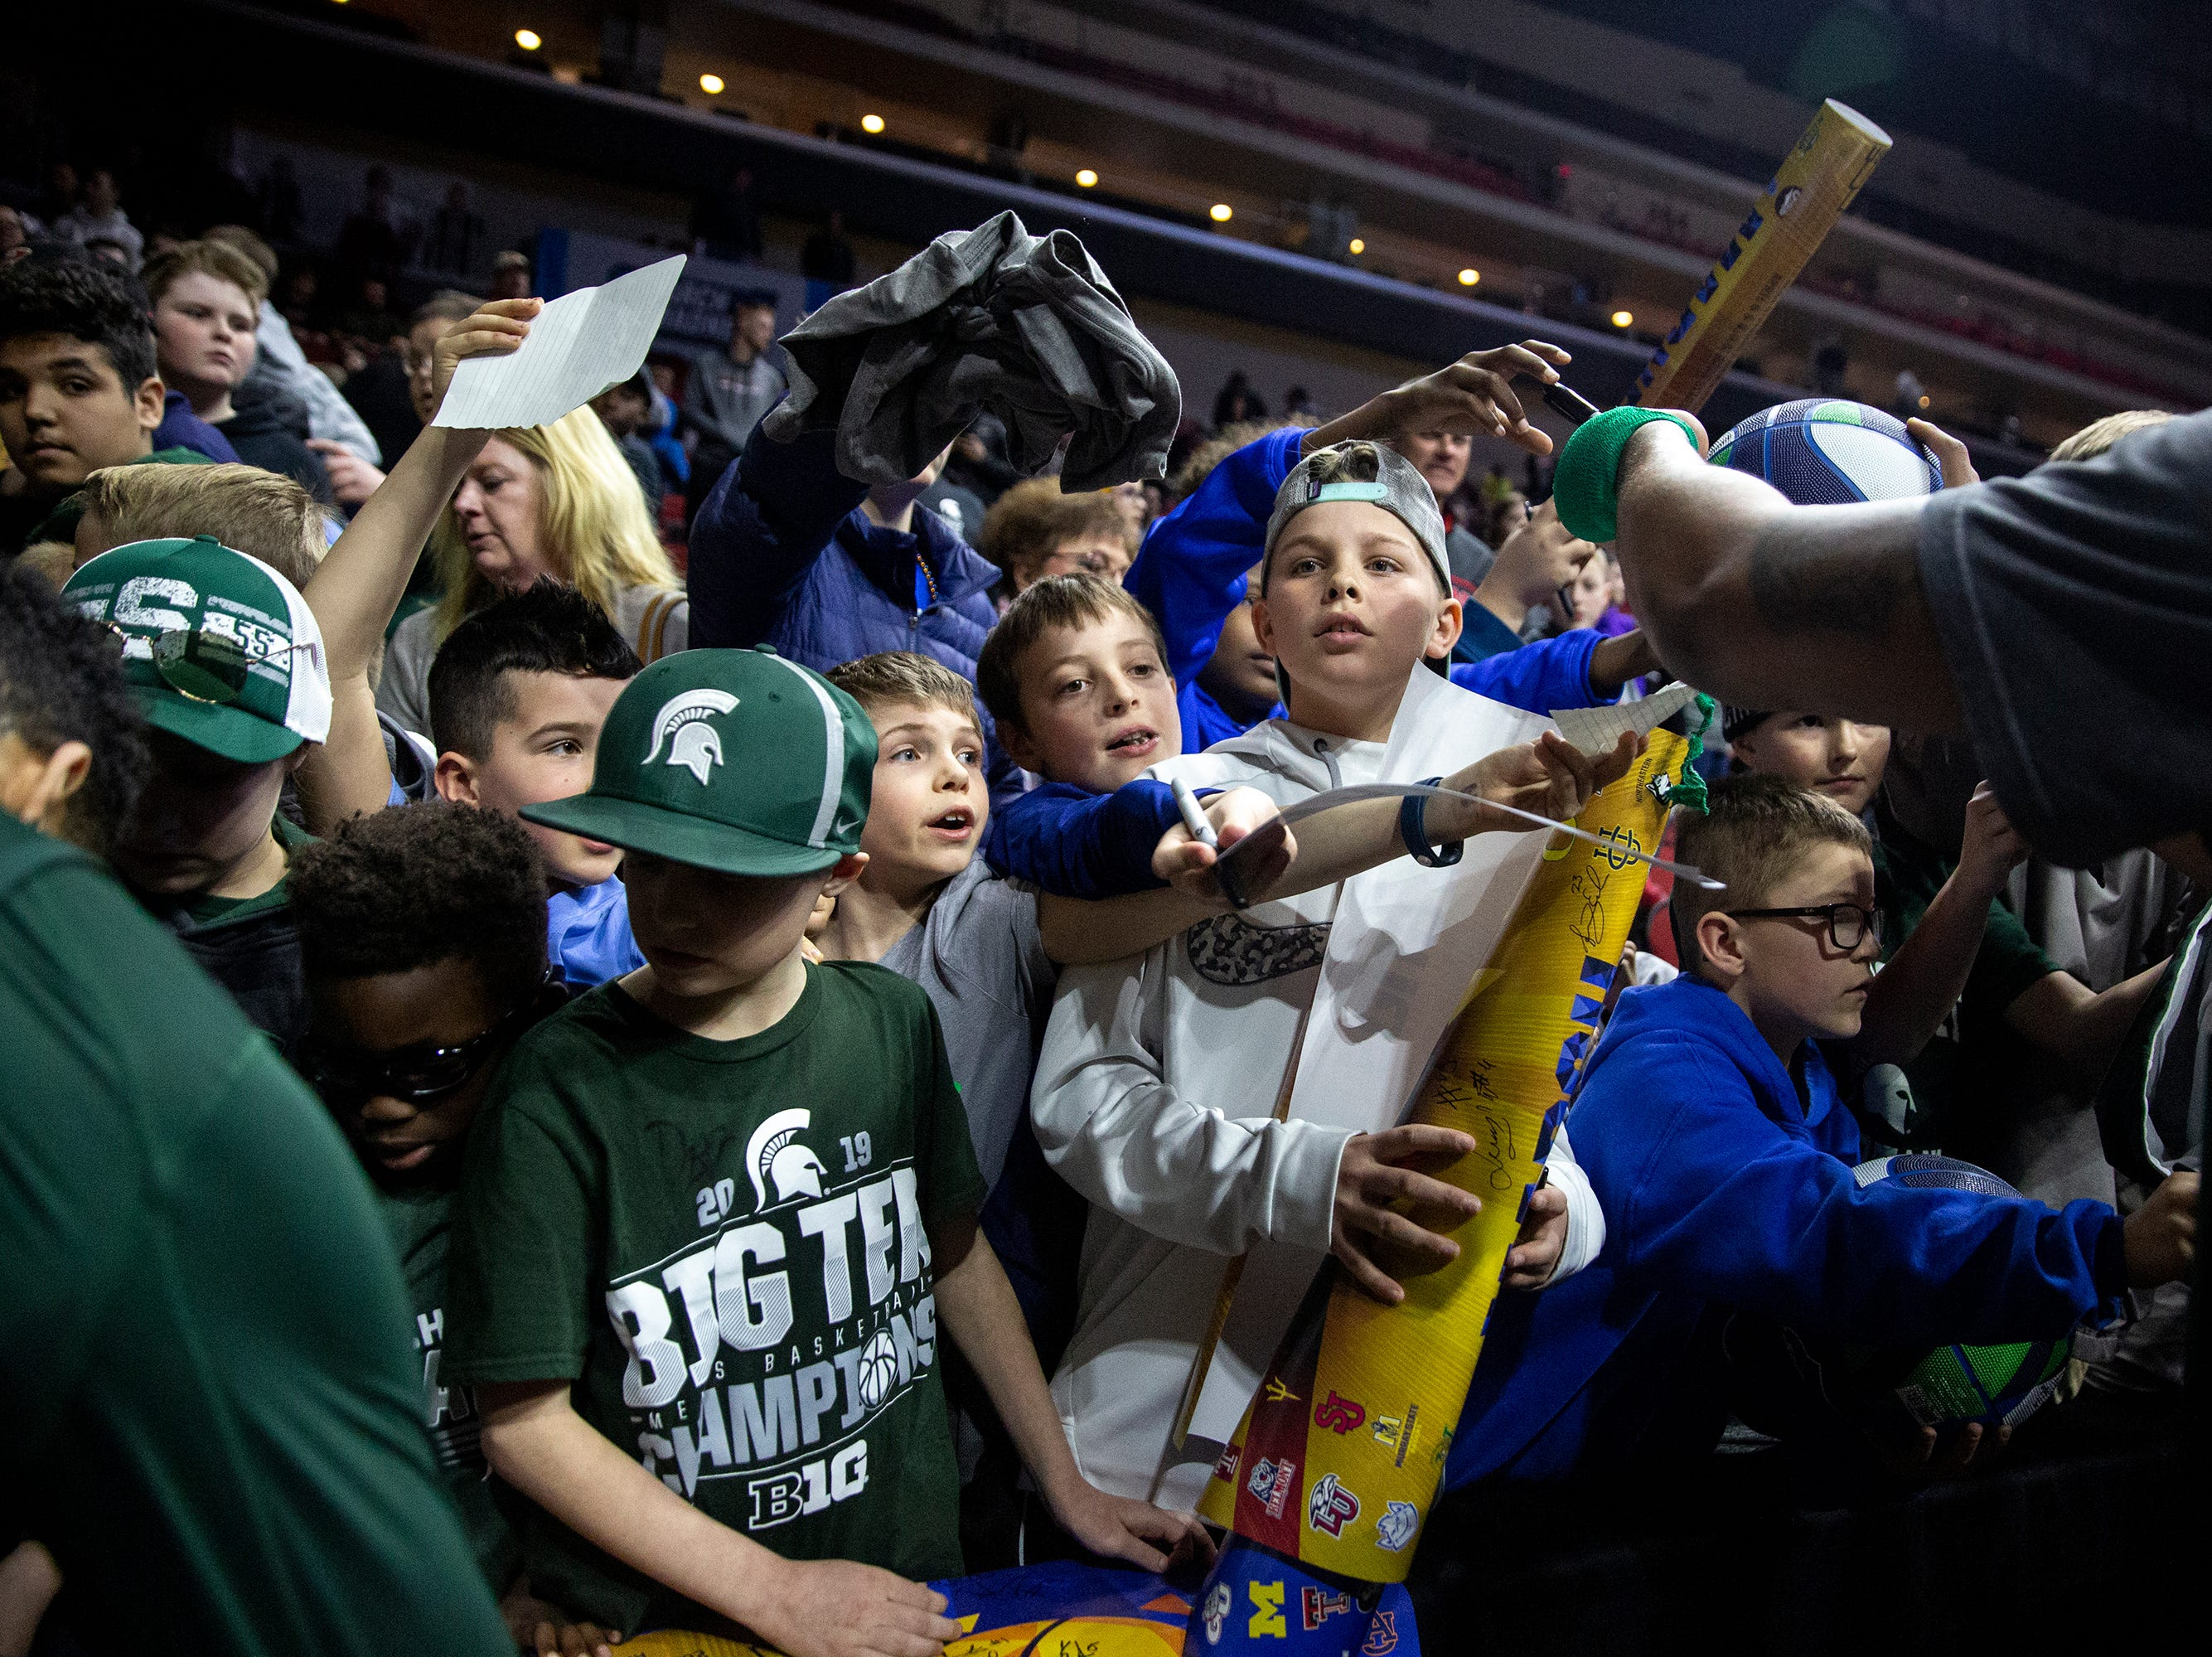 Eager fans wait for autographs from players during Michigan State's open practice before the first round of the NCAA Men's Basketball Tournament on Wednesday, March 20, 2019, at Wells Fargo Arena in Des Moines, Iowa.